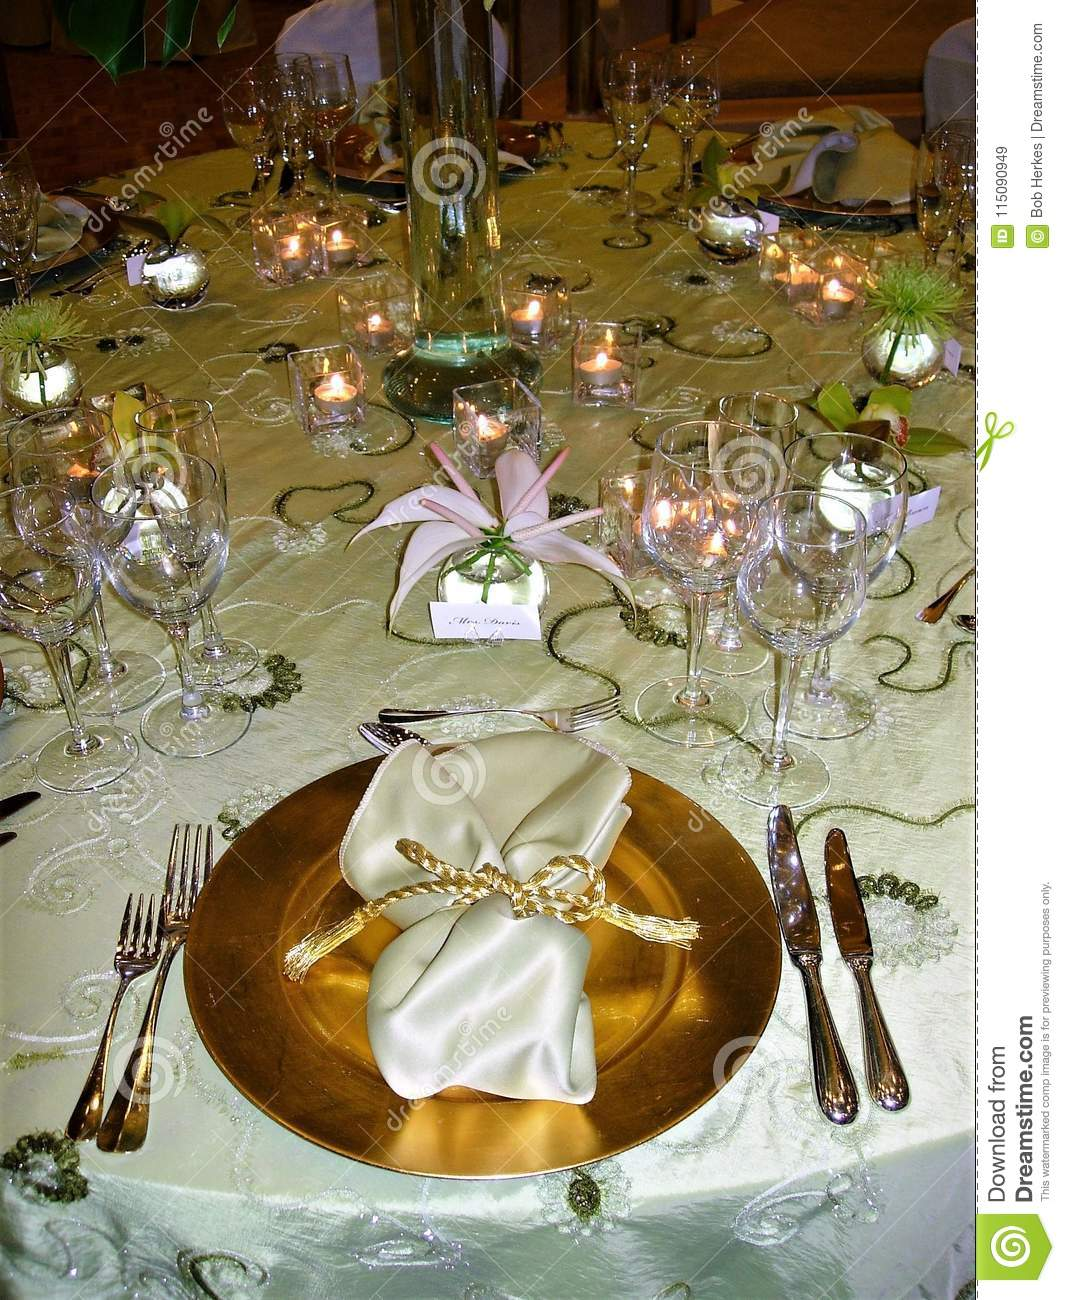 Wedding Table Setting With Gold Accents Stock Image Image Of Accents Floral 115090949